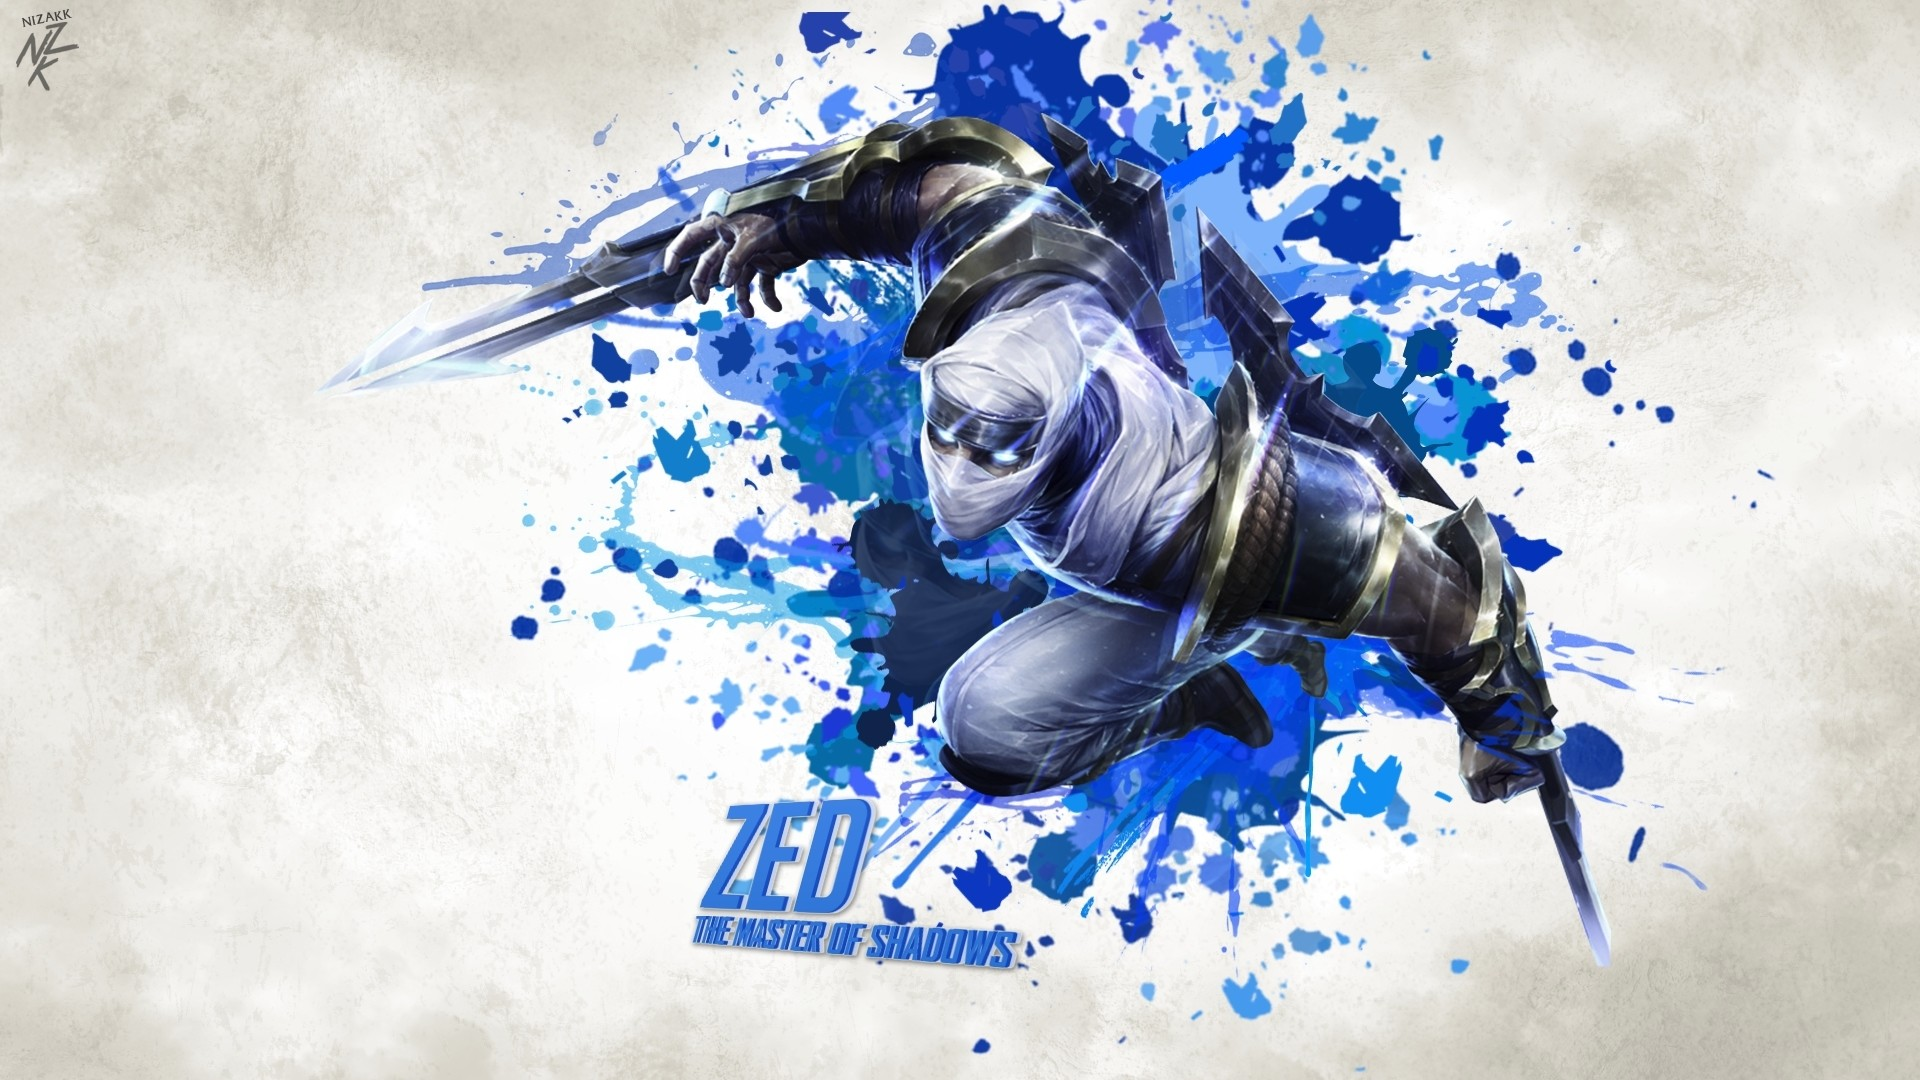 Res: 1920x1080, ZEDSHADOW0 images shockwave ZED HD wallpaper and background photos